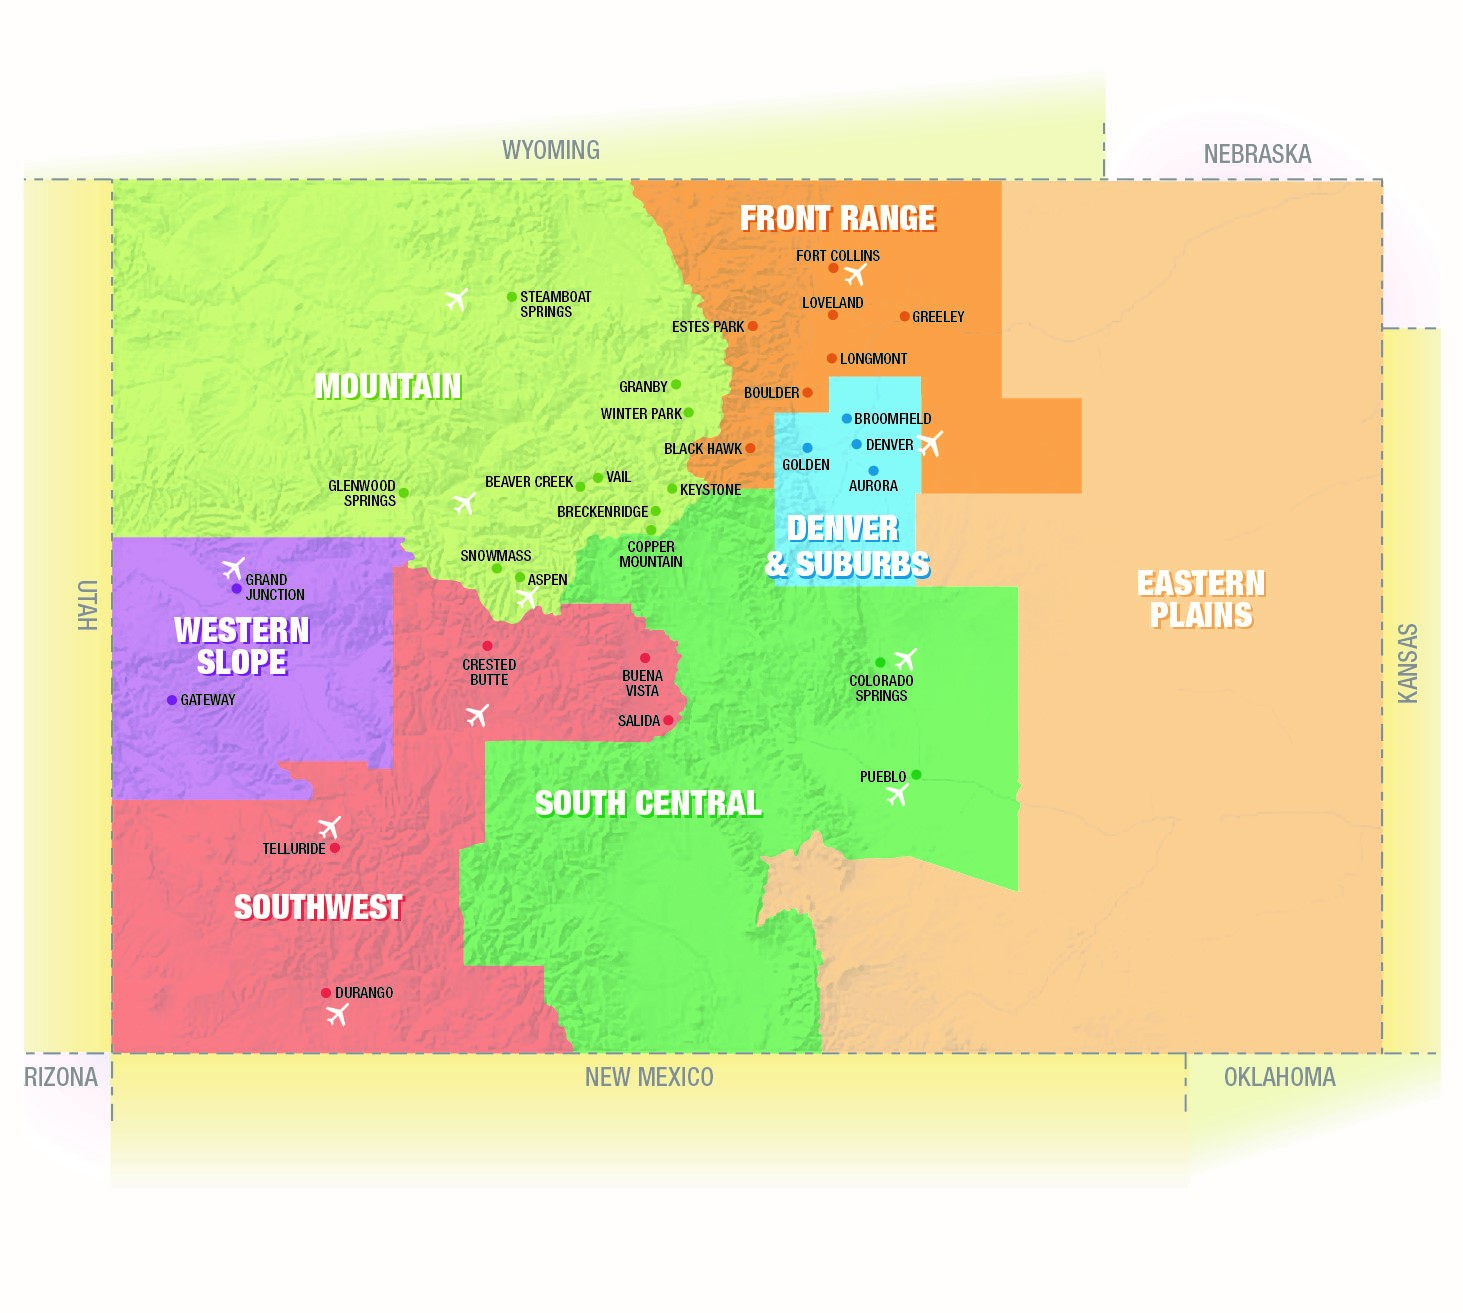 Colorado Regions & Cities